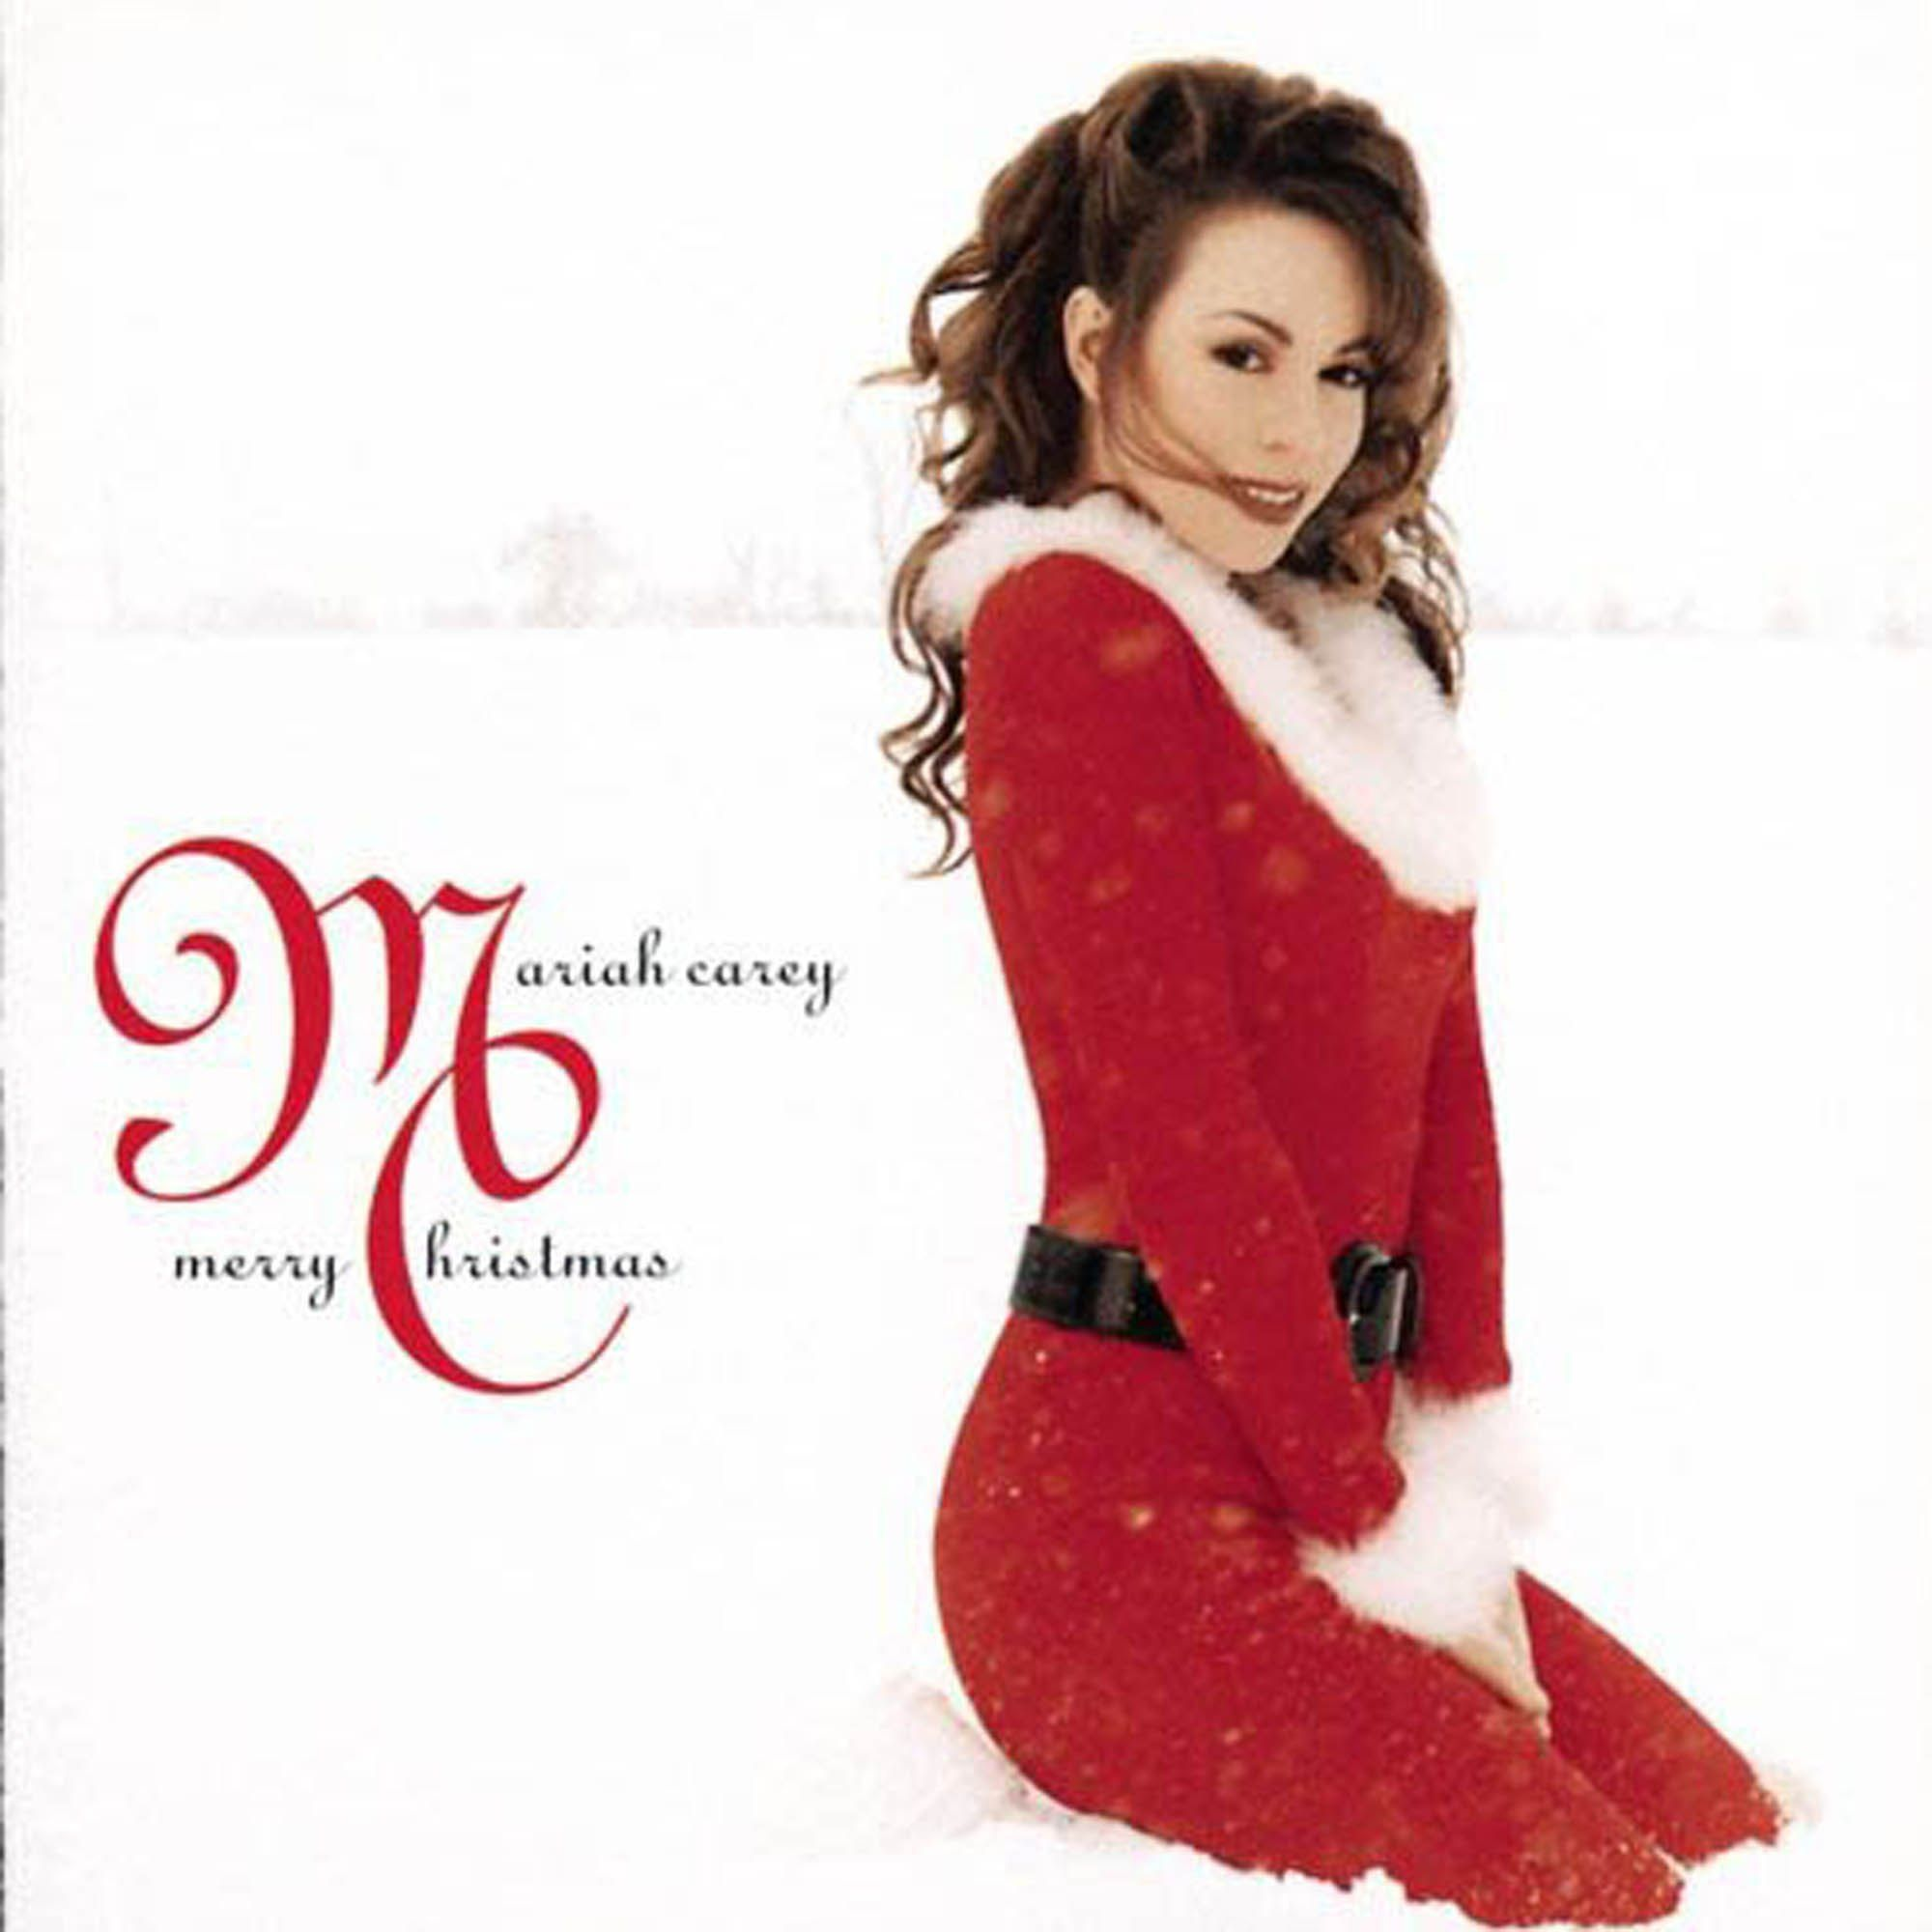 John S Music World Song Of The Day All I Want For Christmas Is You Mariah Carey Christmas Album Mariah Carey Christmas Mariah Carey Merry Christmas